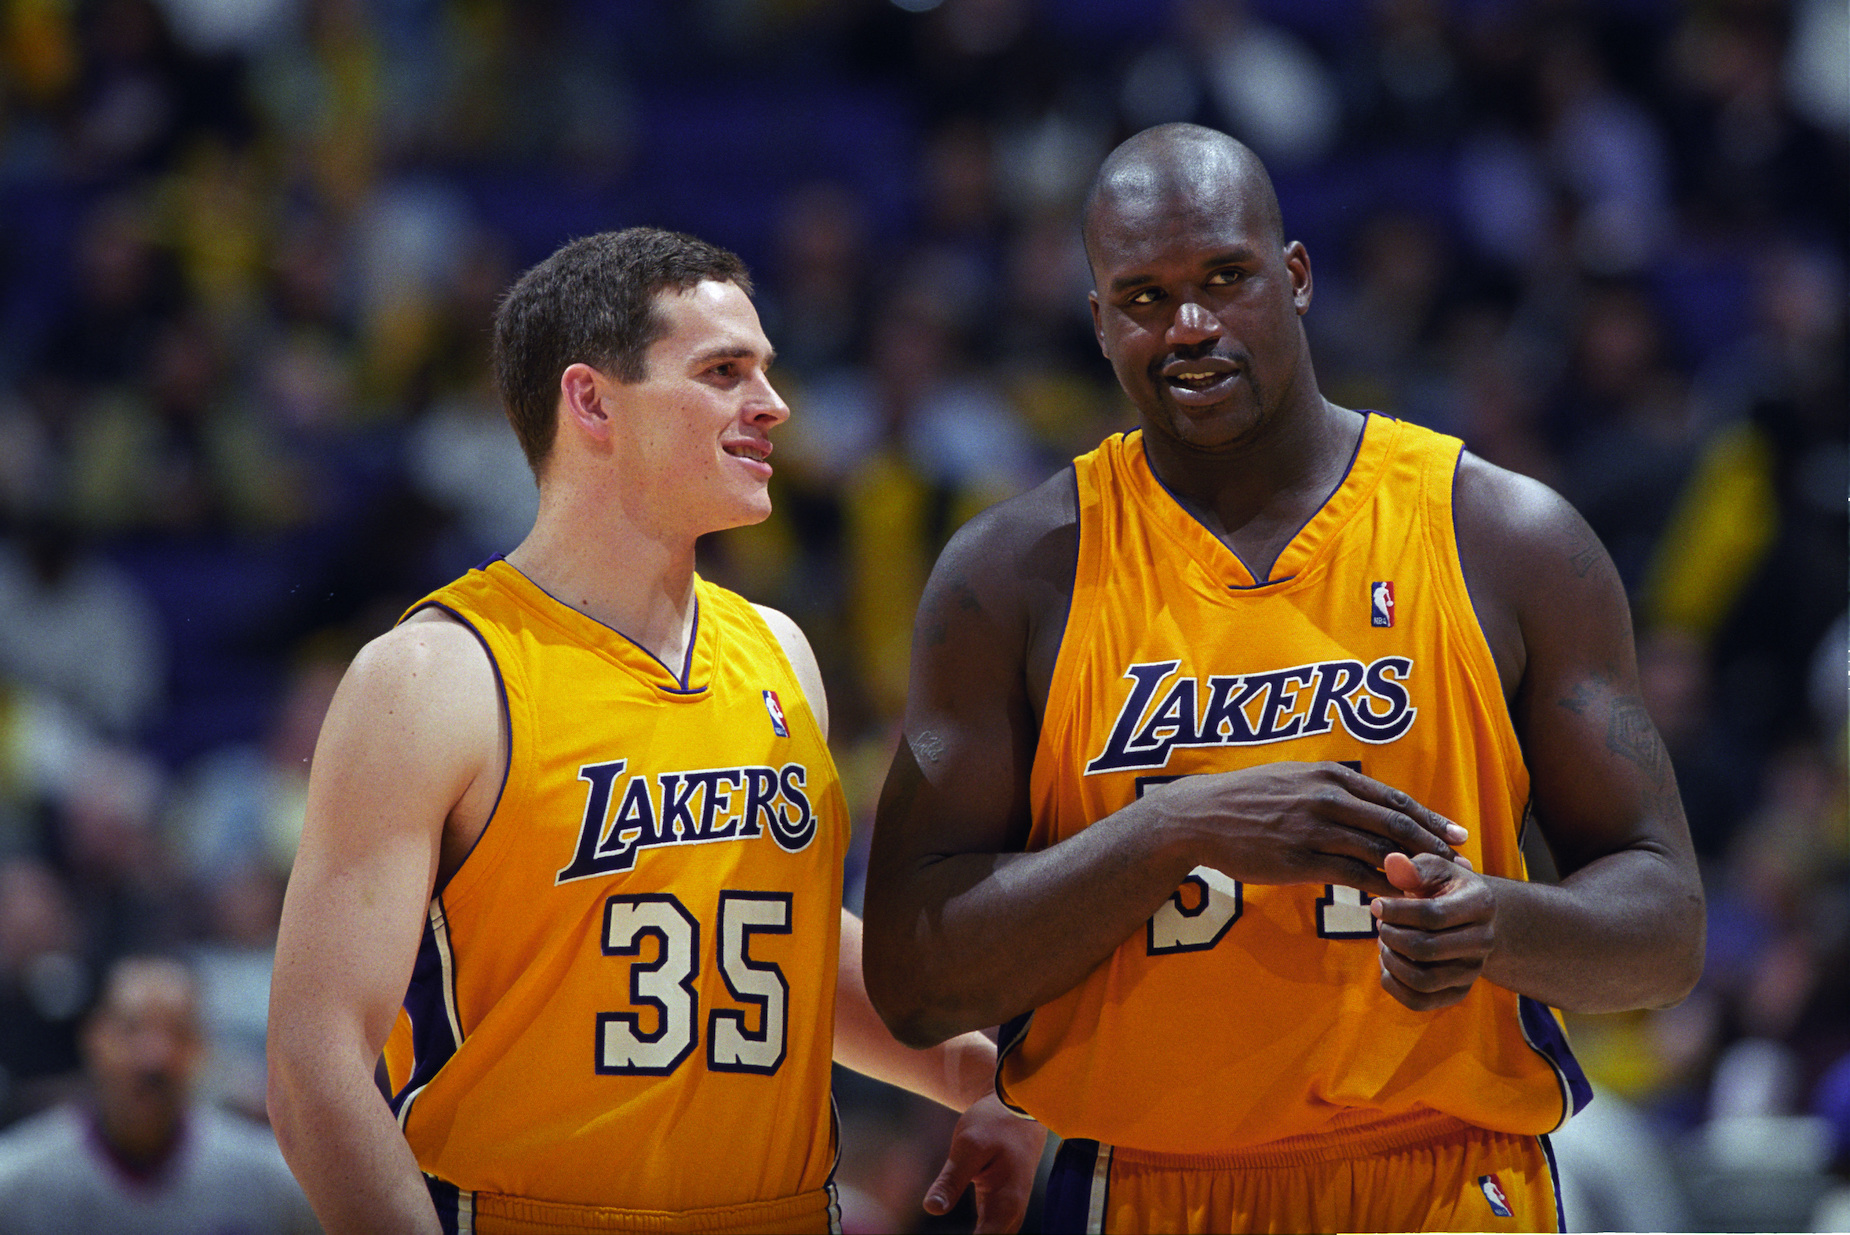 Shaquille O'Neal Acted Like a 'Mormon Match.com' Service to Help 1 of His Lakers Teammates Find Love